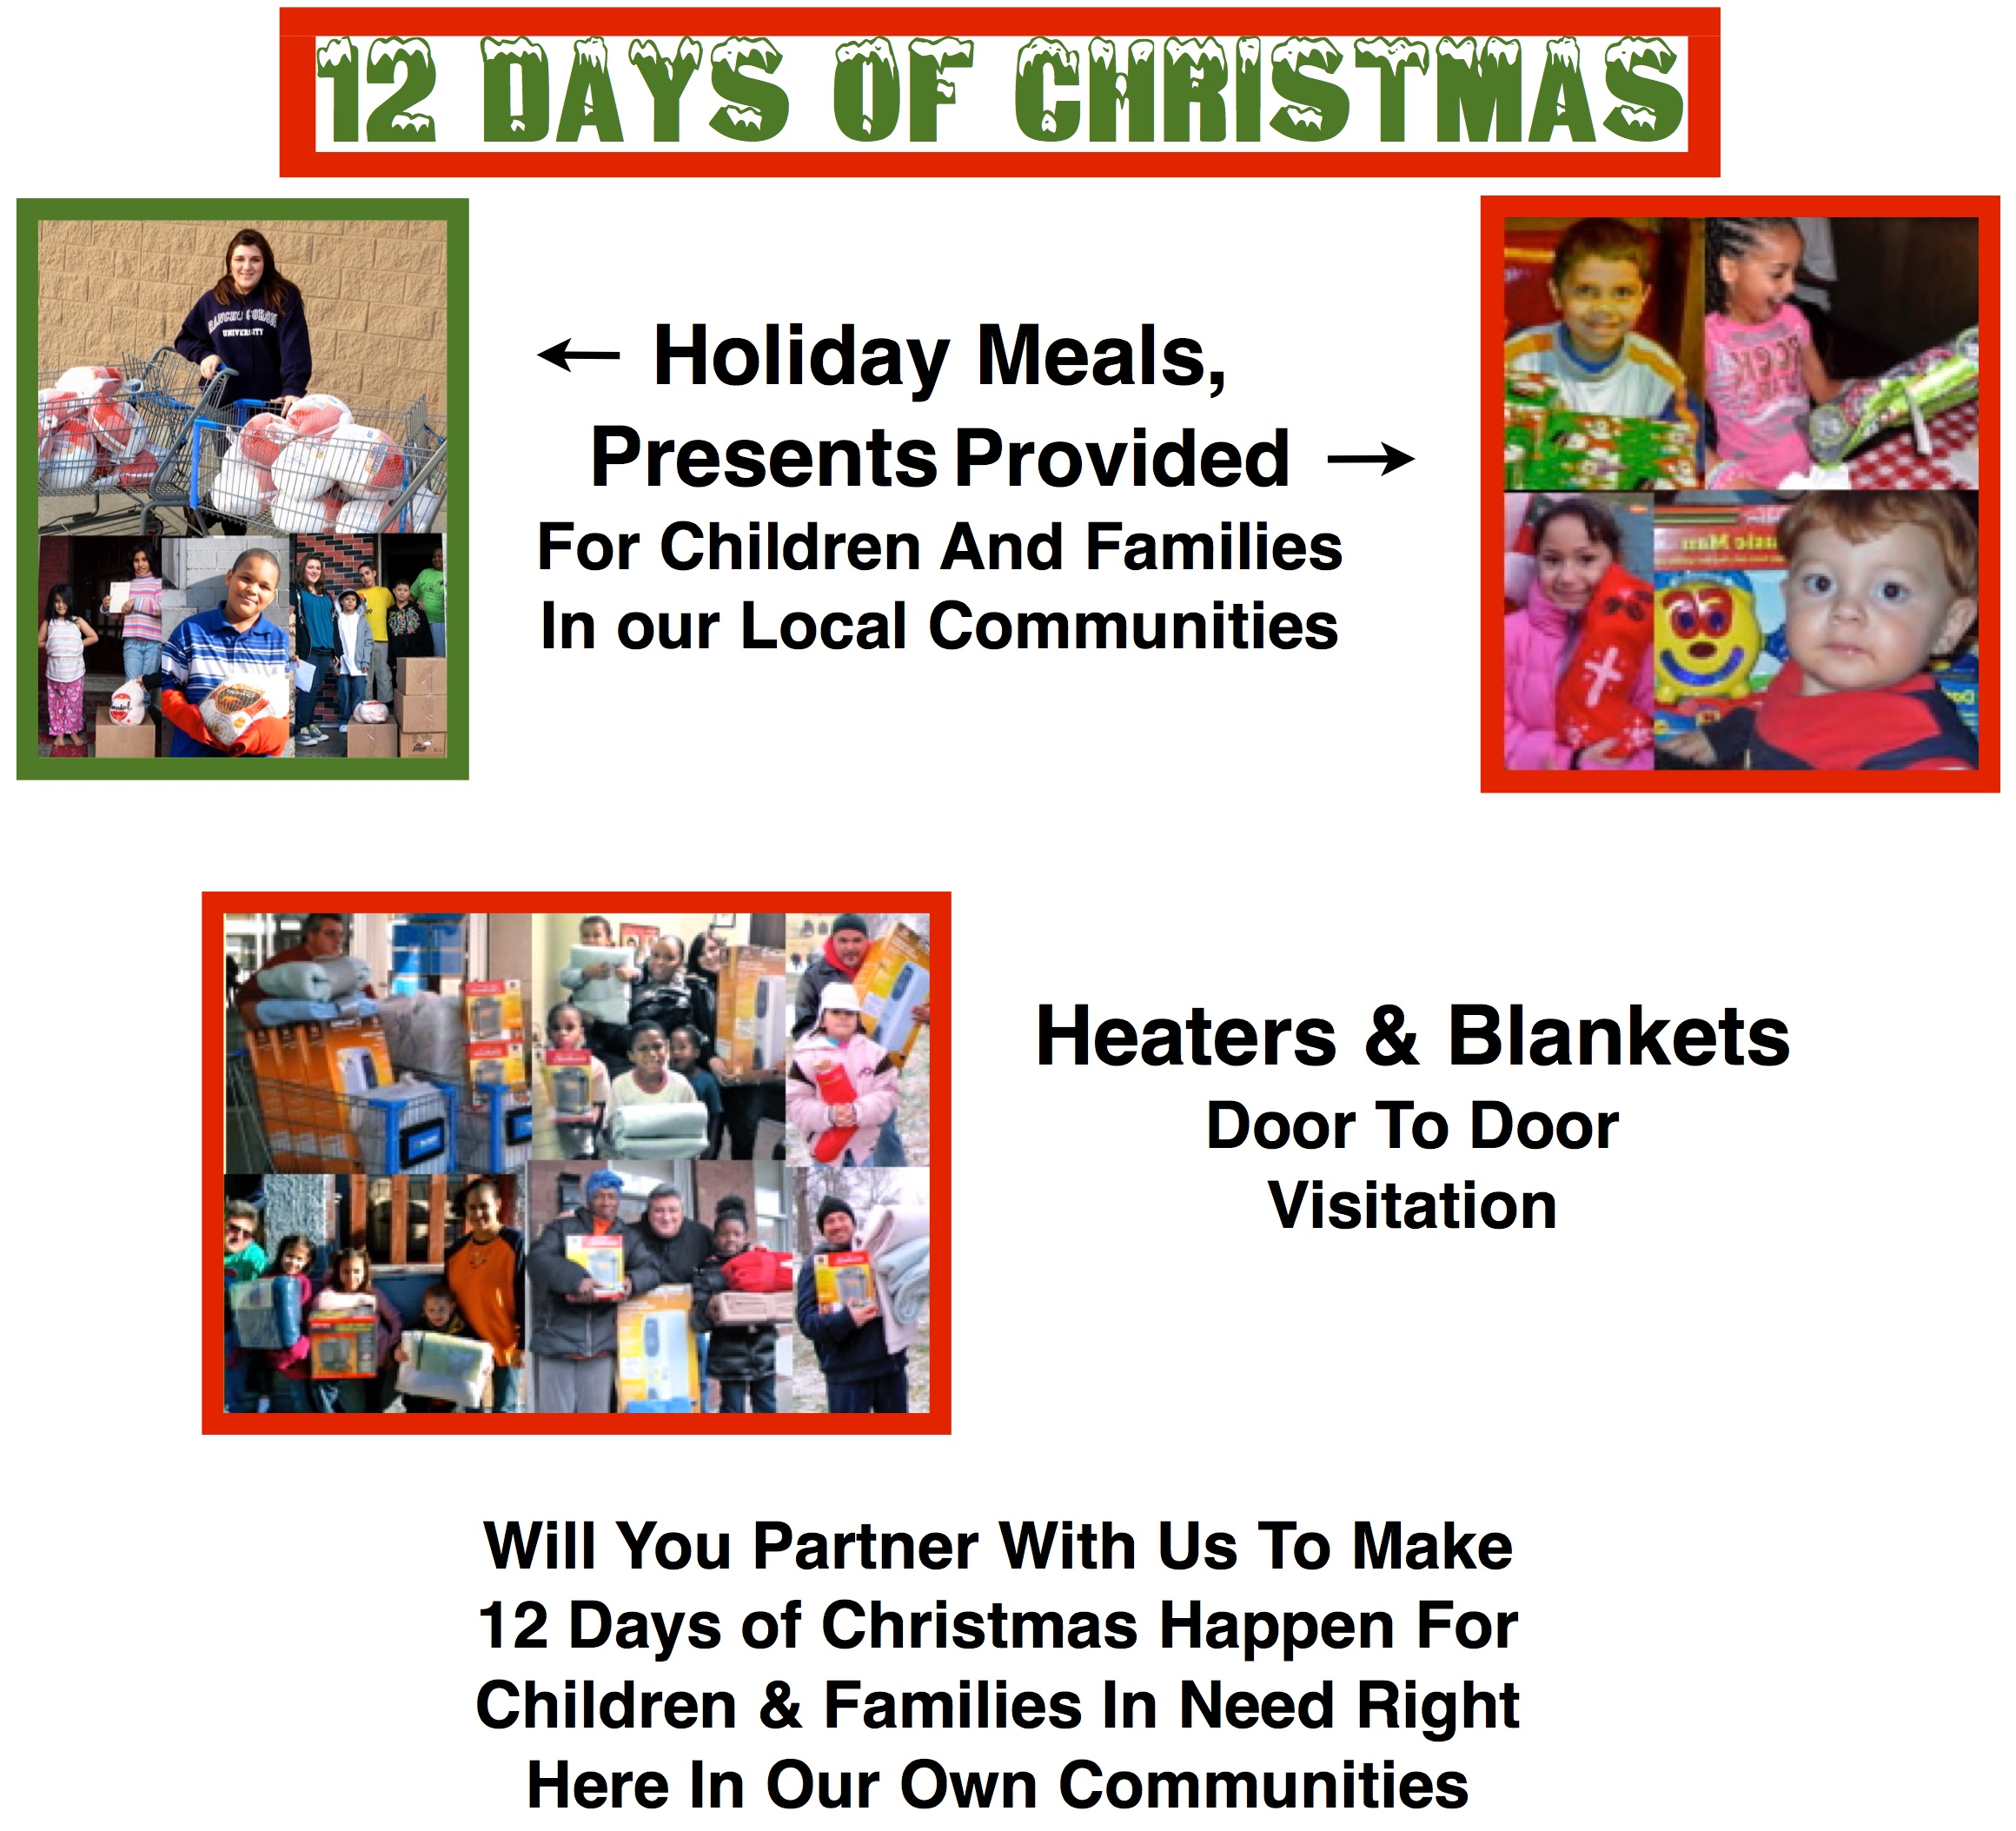 12 Days of Christmas Giving